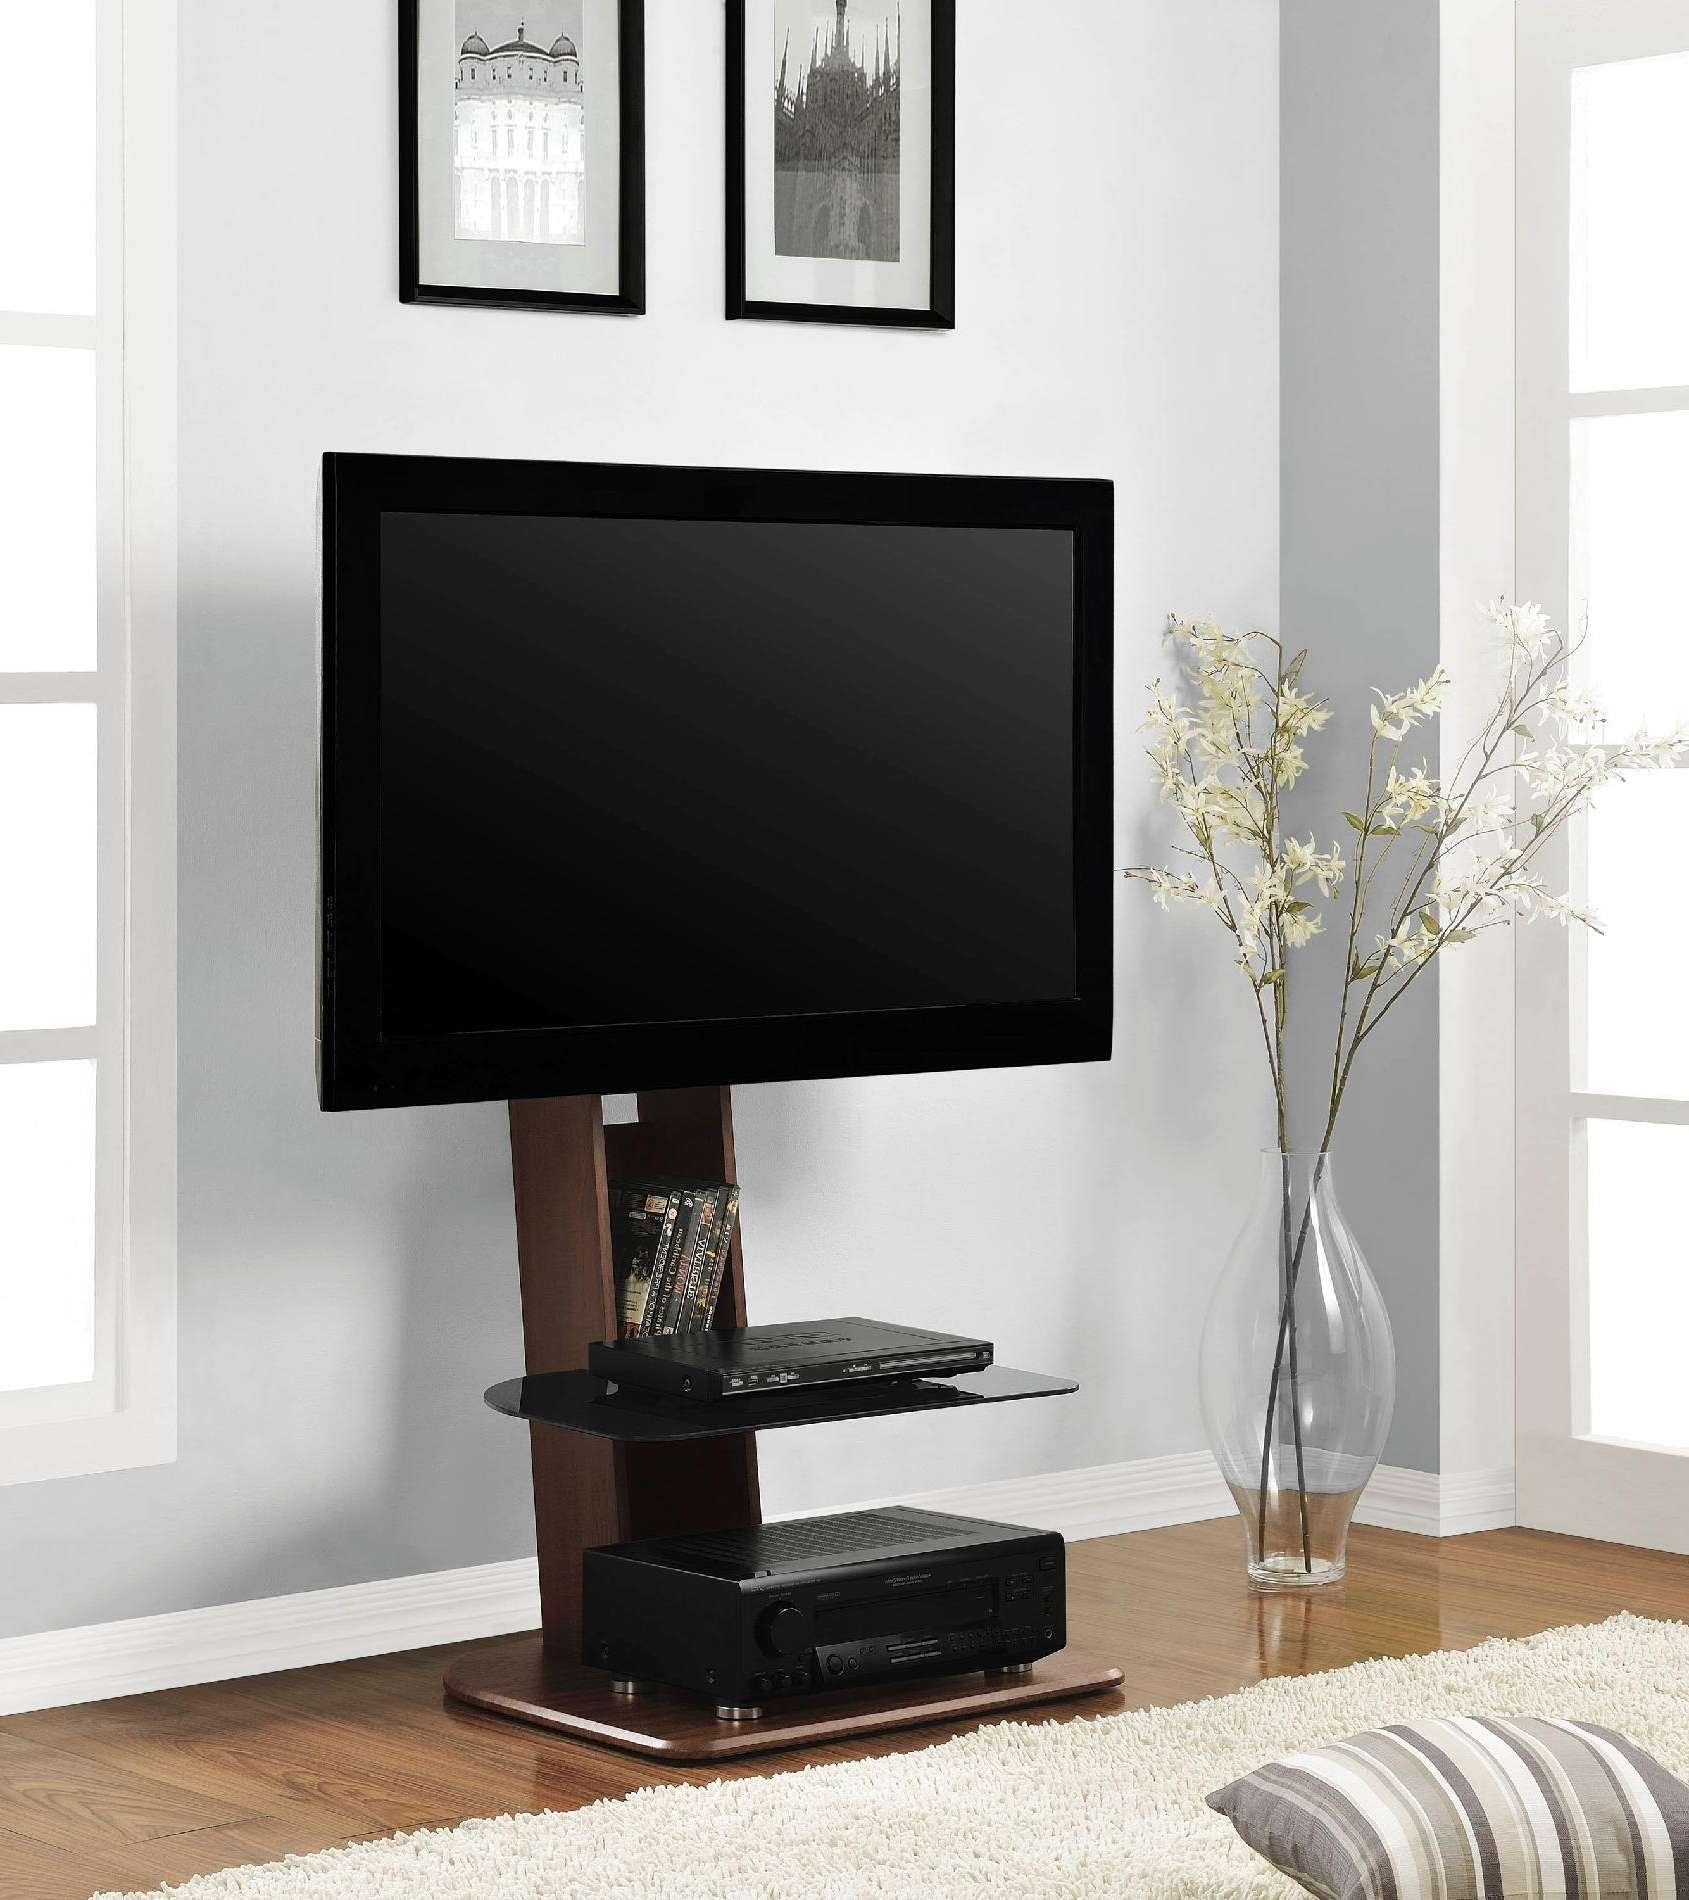 Startling Mount Discount Tv Stands Wall Brown Carpet Television Throughout Walnut Tv Stands For Flat Screens (View 12 of 20)